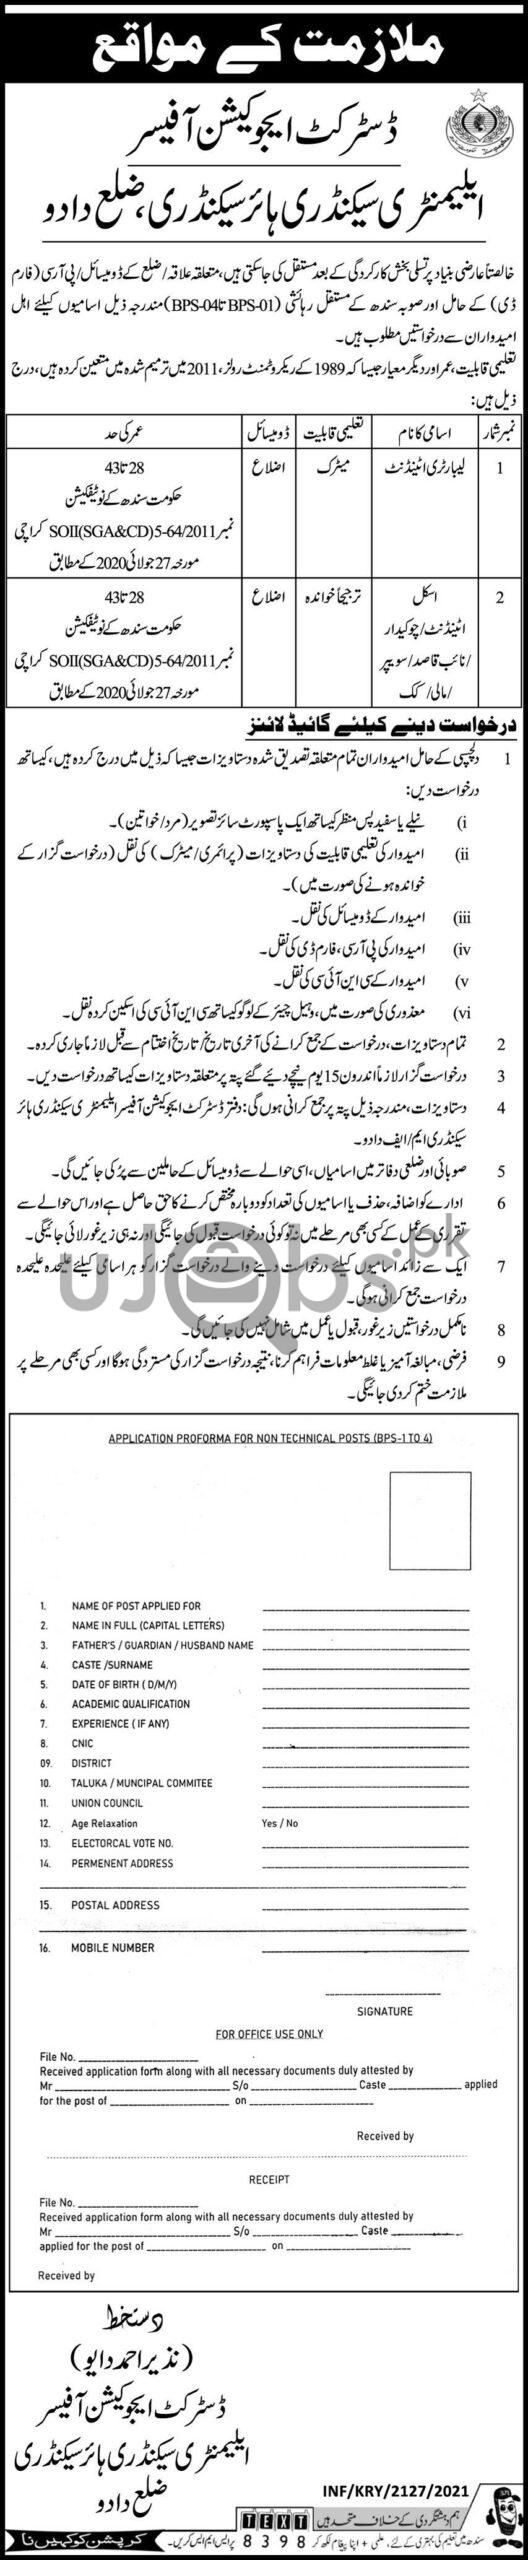 Elementary Secondary and Higher Secondary District Dawood Sindh Jobs 2021